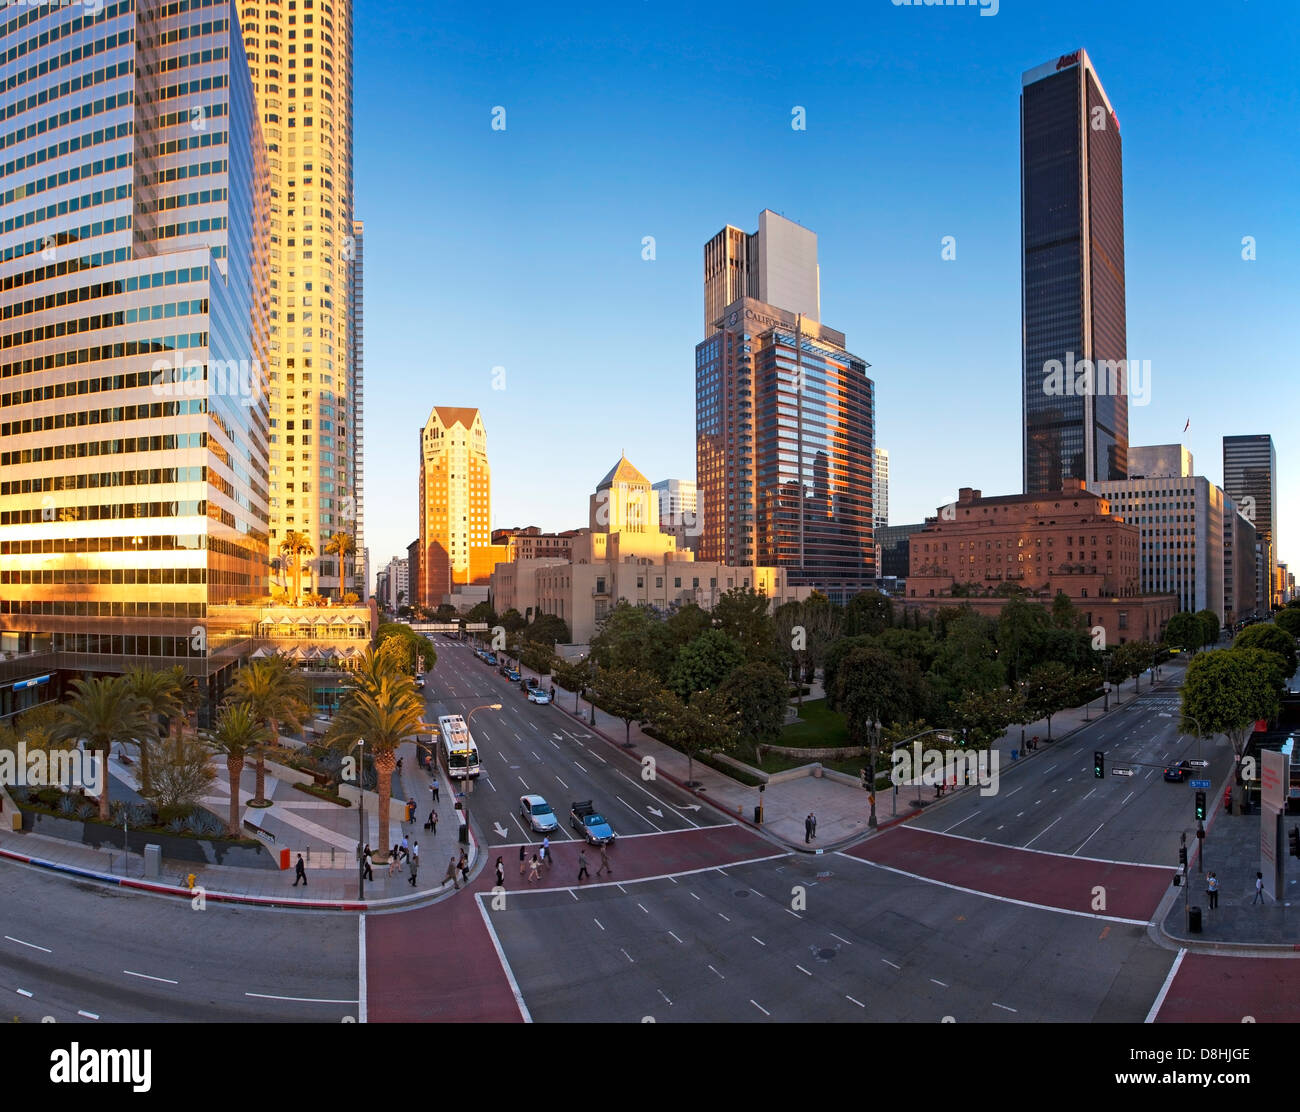 United States, California, Los Angeles, Downtown - Stock Image